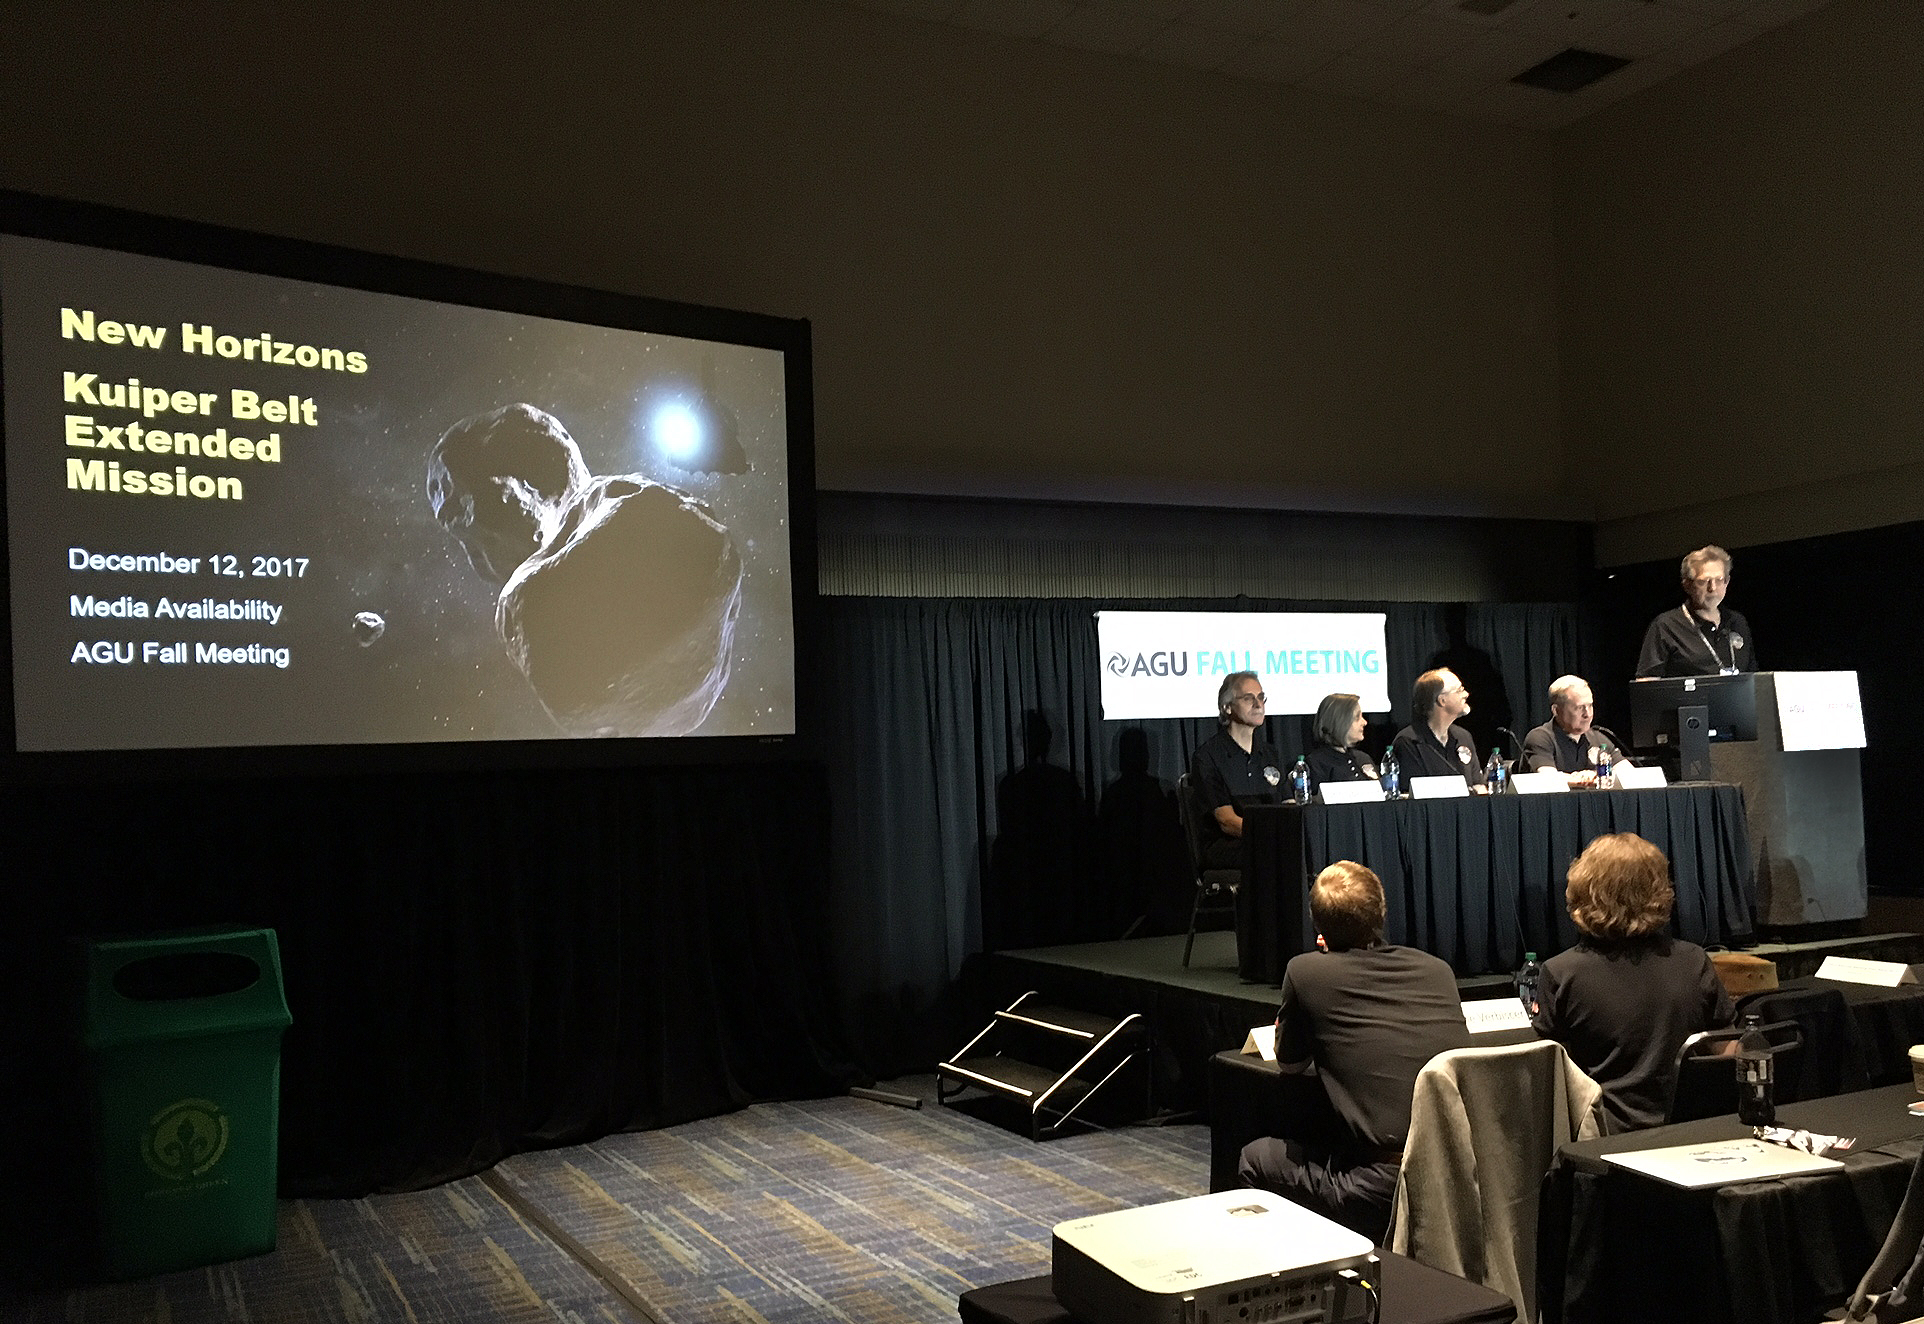 New Horizons team members discuss the Kuiper Belt Extended Mission during a media briefing at the American Geophysical Union Fall Meeting on Dec. 12 in New Orleans. Image Credit: NASA / JHUAPL / SwRI